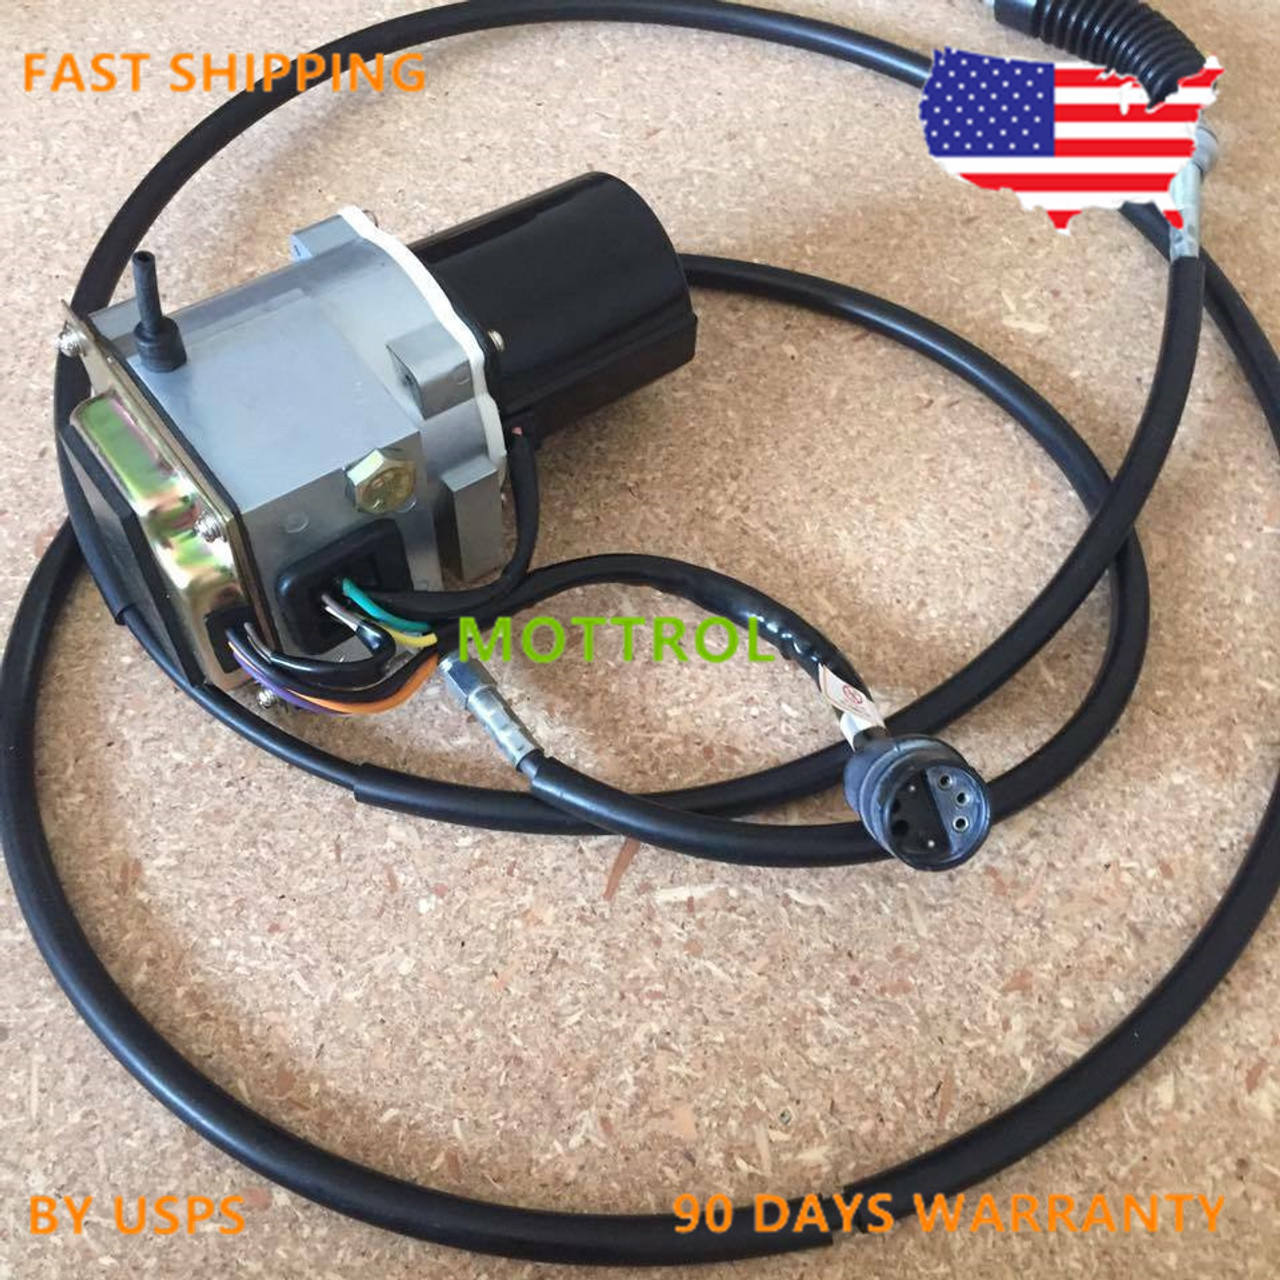 106-0100 1060100 Throttle Motor AS-GOVERNOR FITS 325L E320L,E325 CABLE 250CM